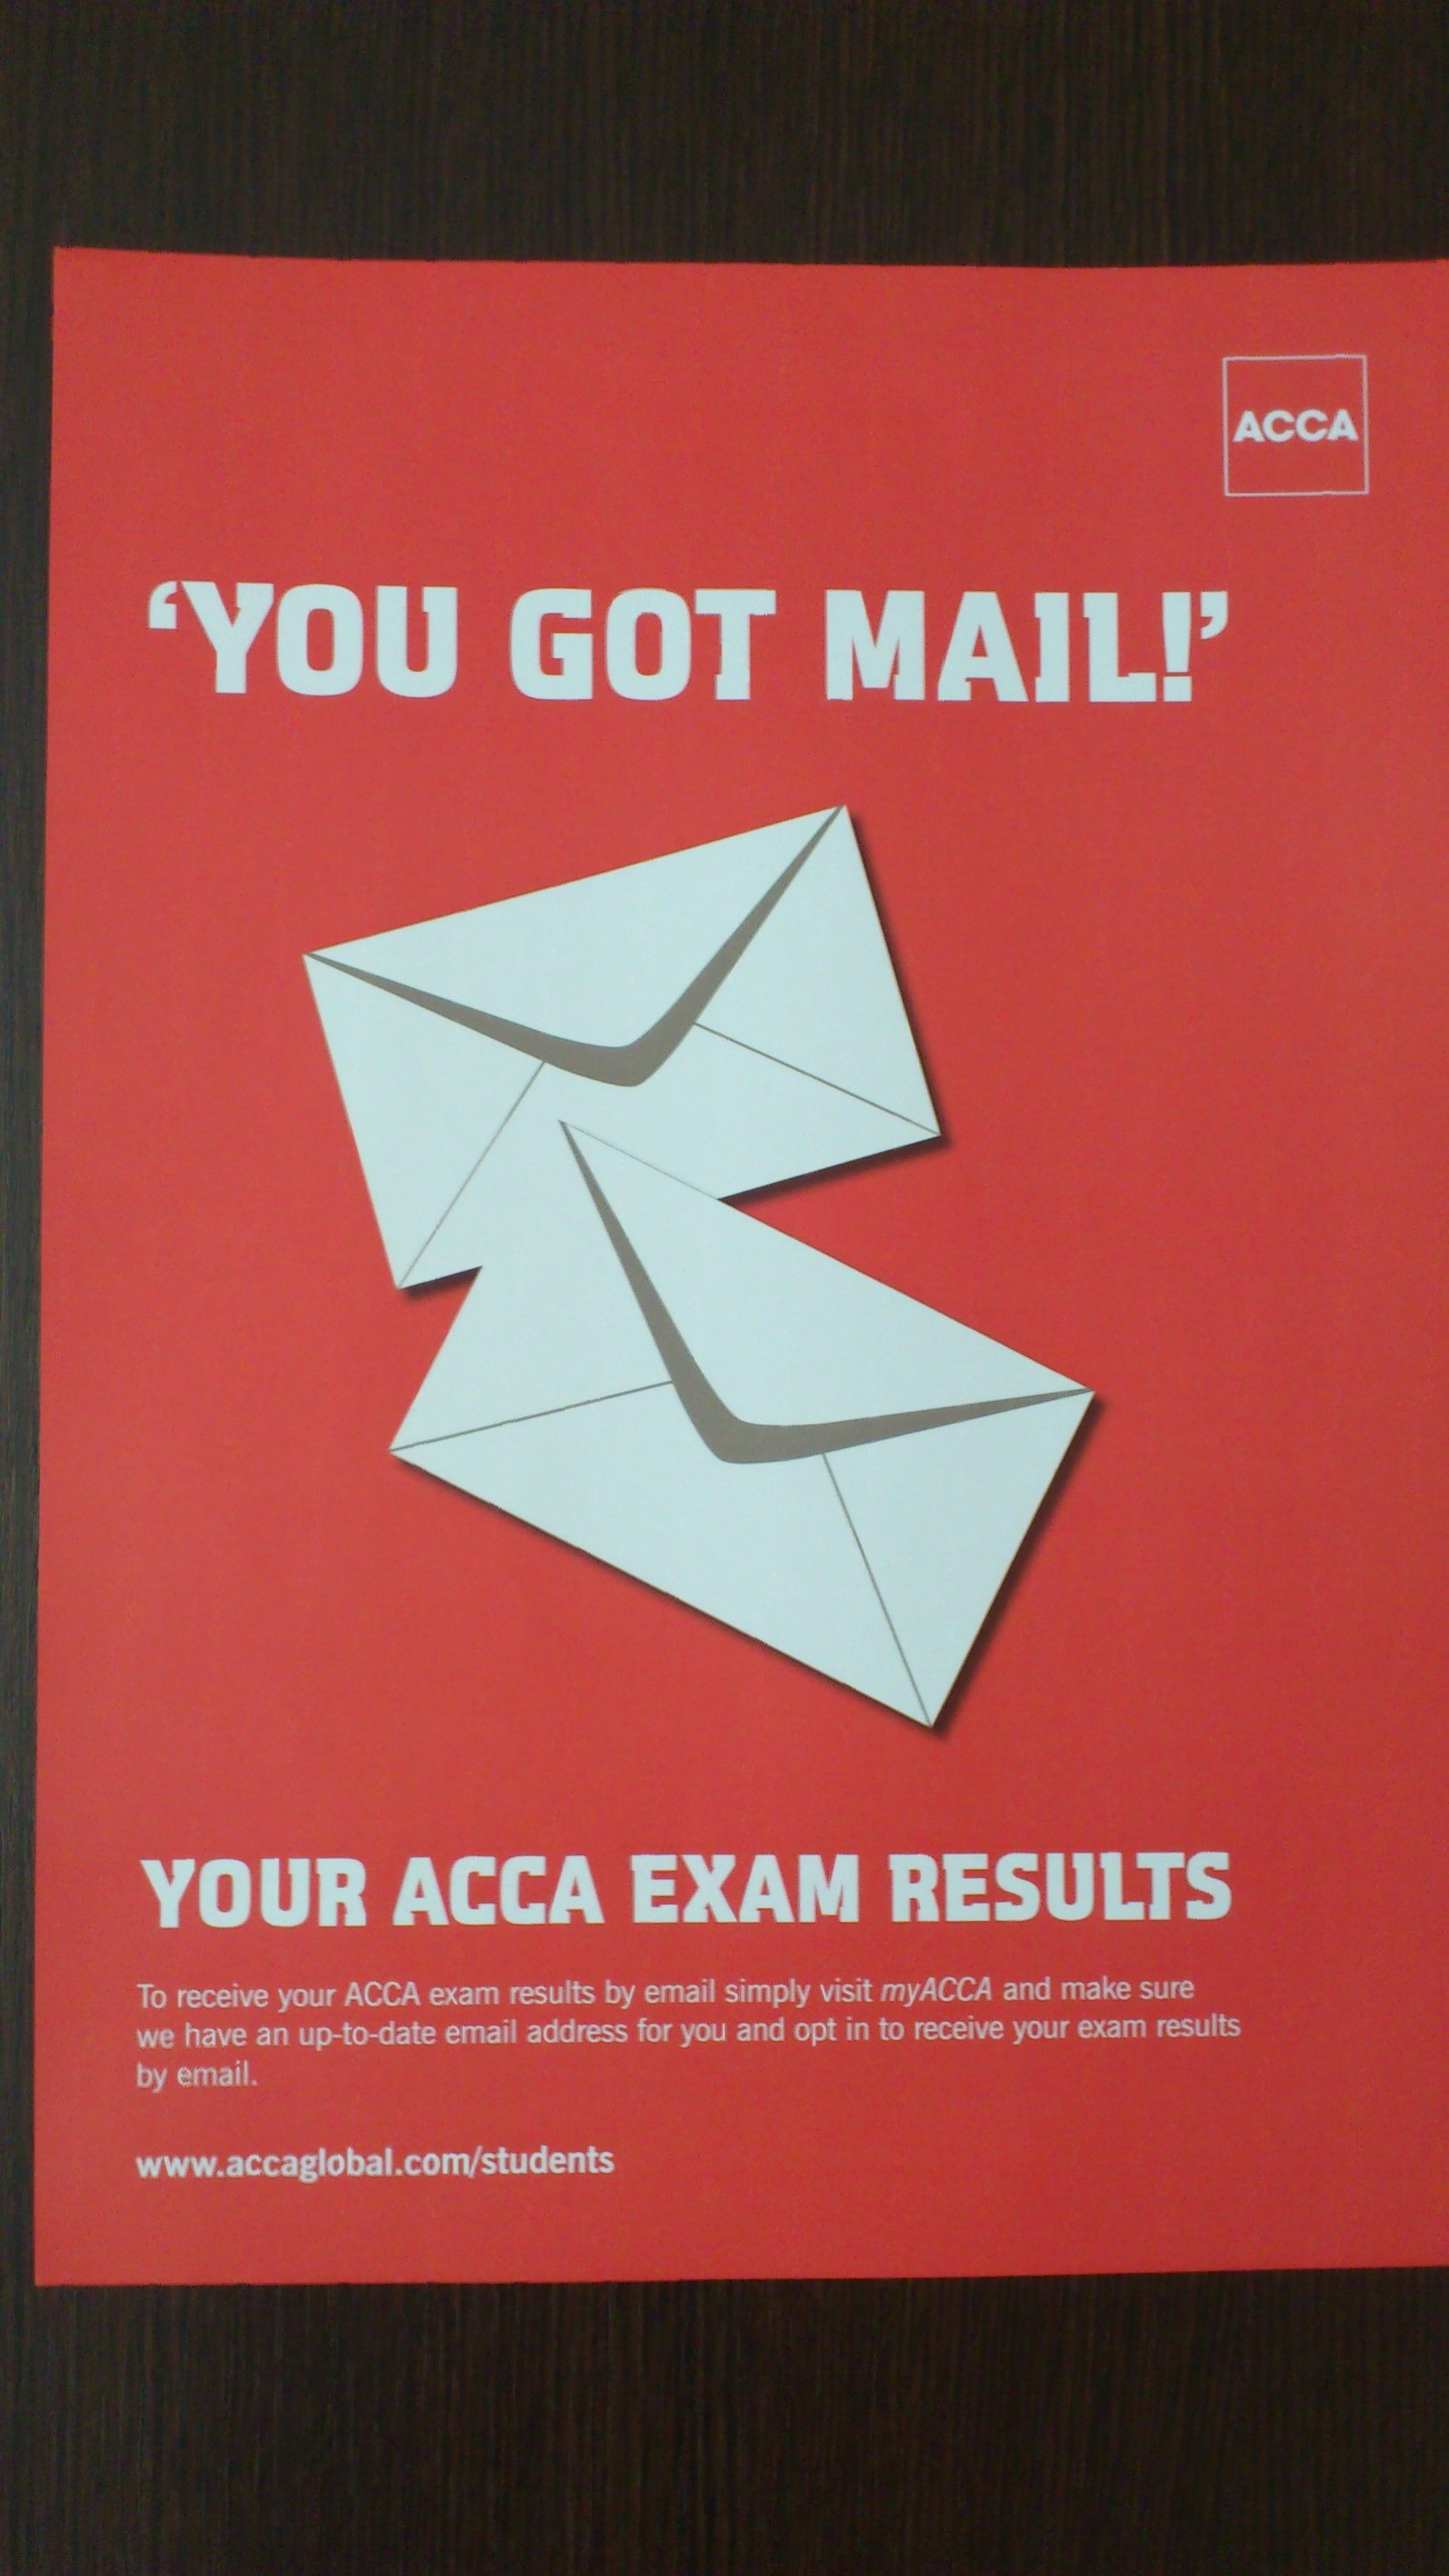 It seems the acca do realise that students are too stressed for the it seems the acca do realise that students are too stressed for the results of their exams they provide the exams results very fast through email fandeluxe Images